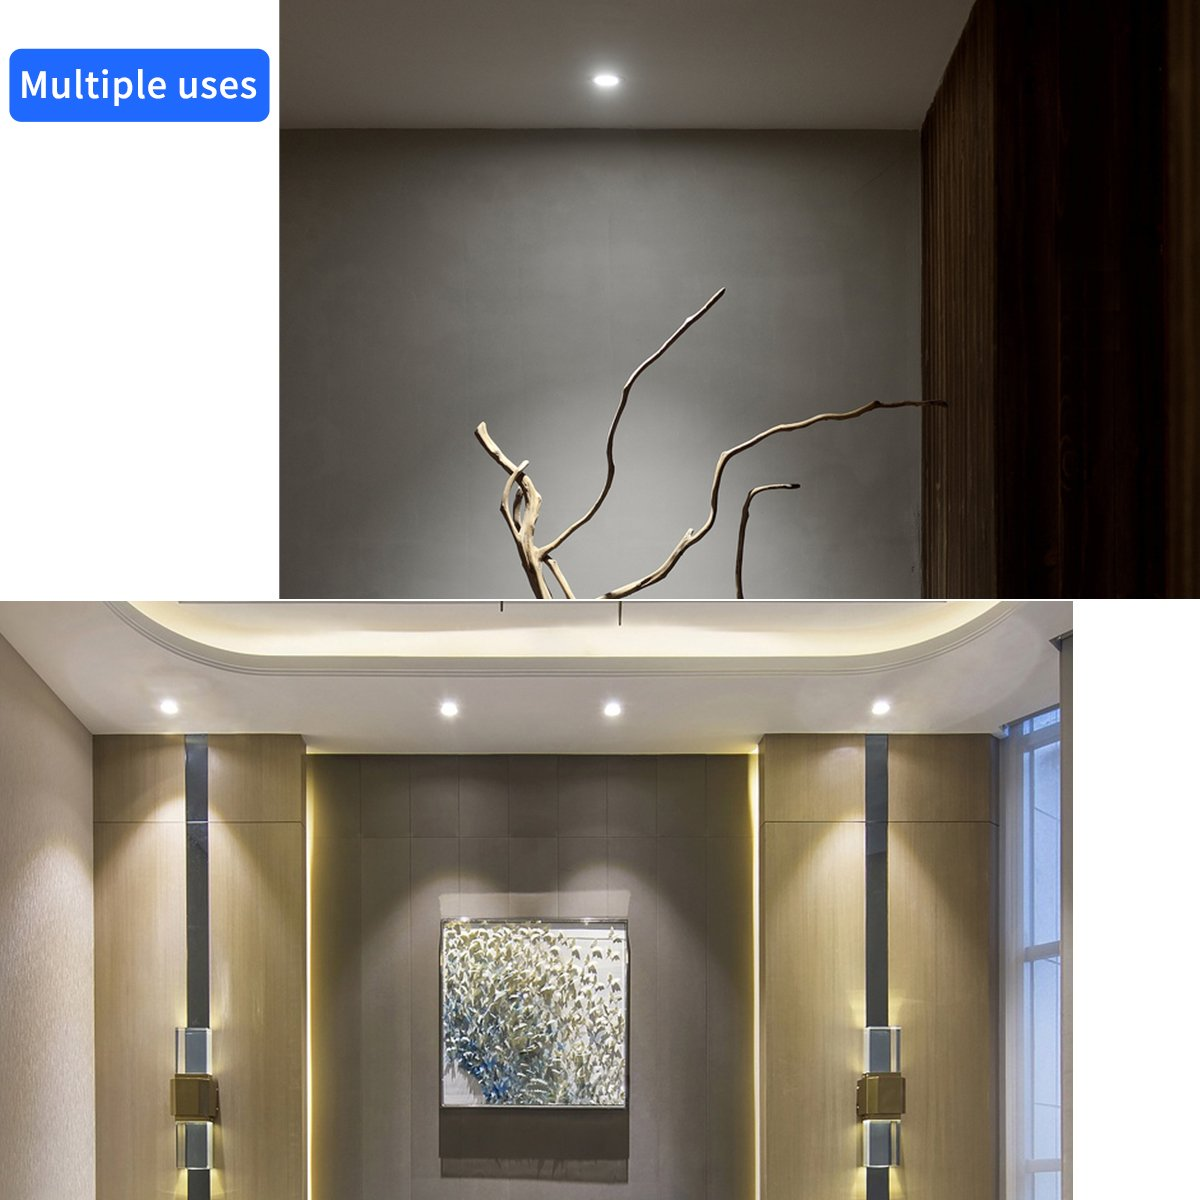 24 Beam Angle Spotlight For Living Room,Hotel Warm White 3000k,Recessed Ceiling Lighting Fixture Flexible Light 960lm Ding Room Beam Direction SCON 12W CRI93 LED COB CREE COB Downlight